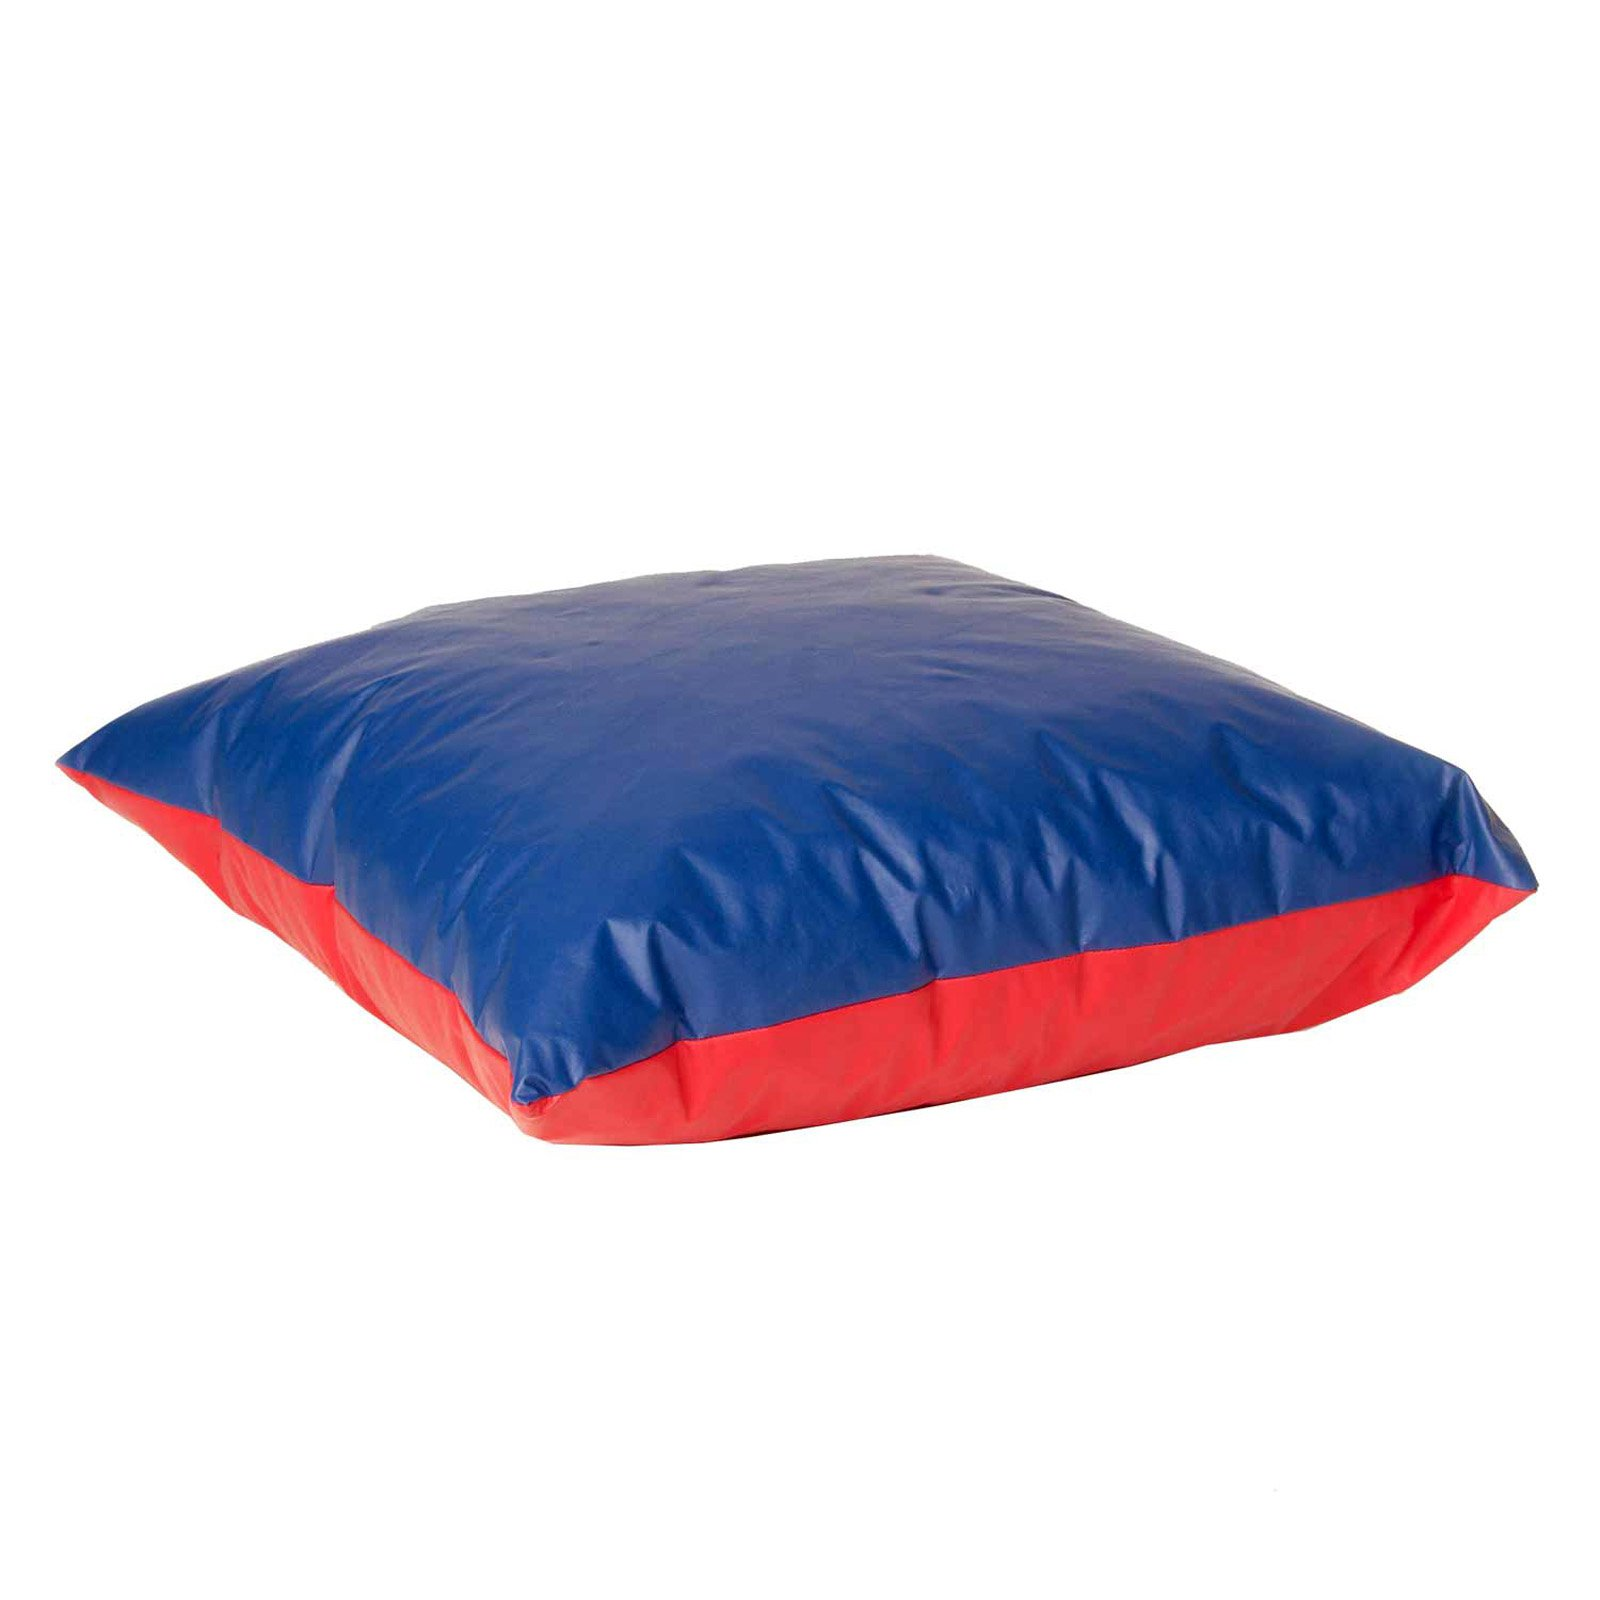 Foamnasium Small Shred Pillow Soft Play by Overstock